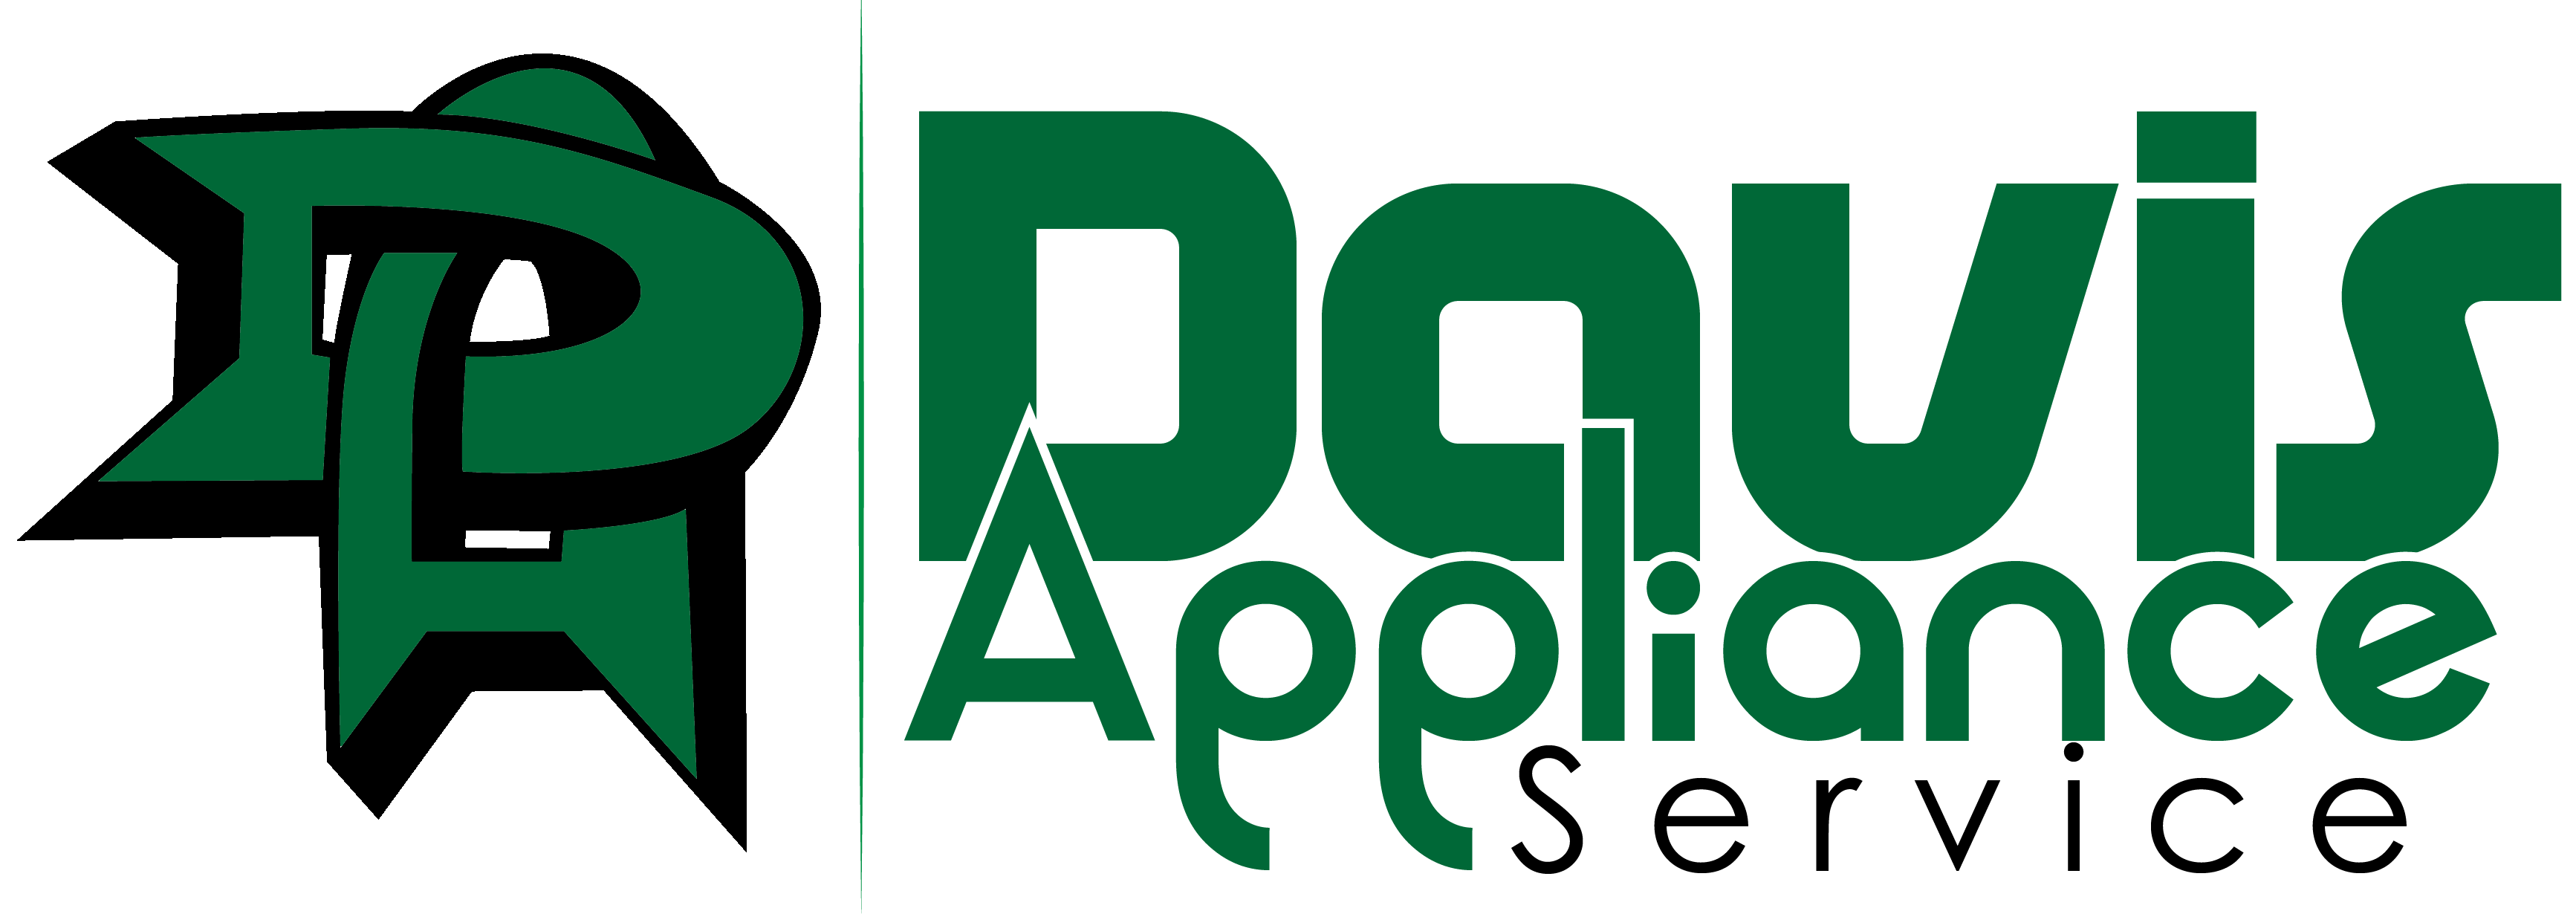 Davis Appliance Service LLC